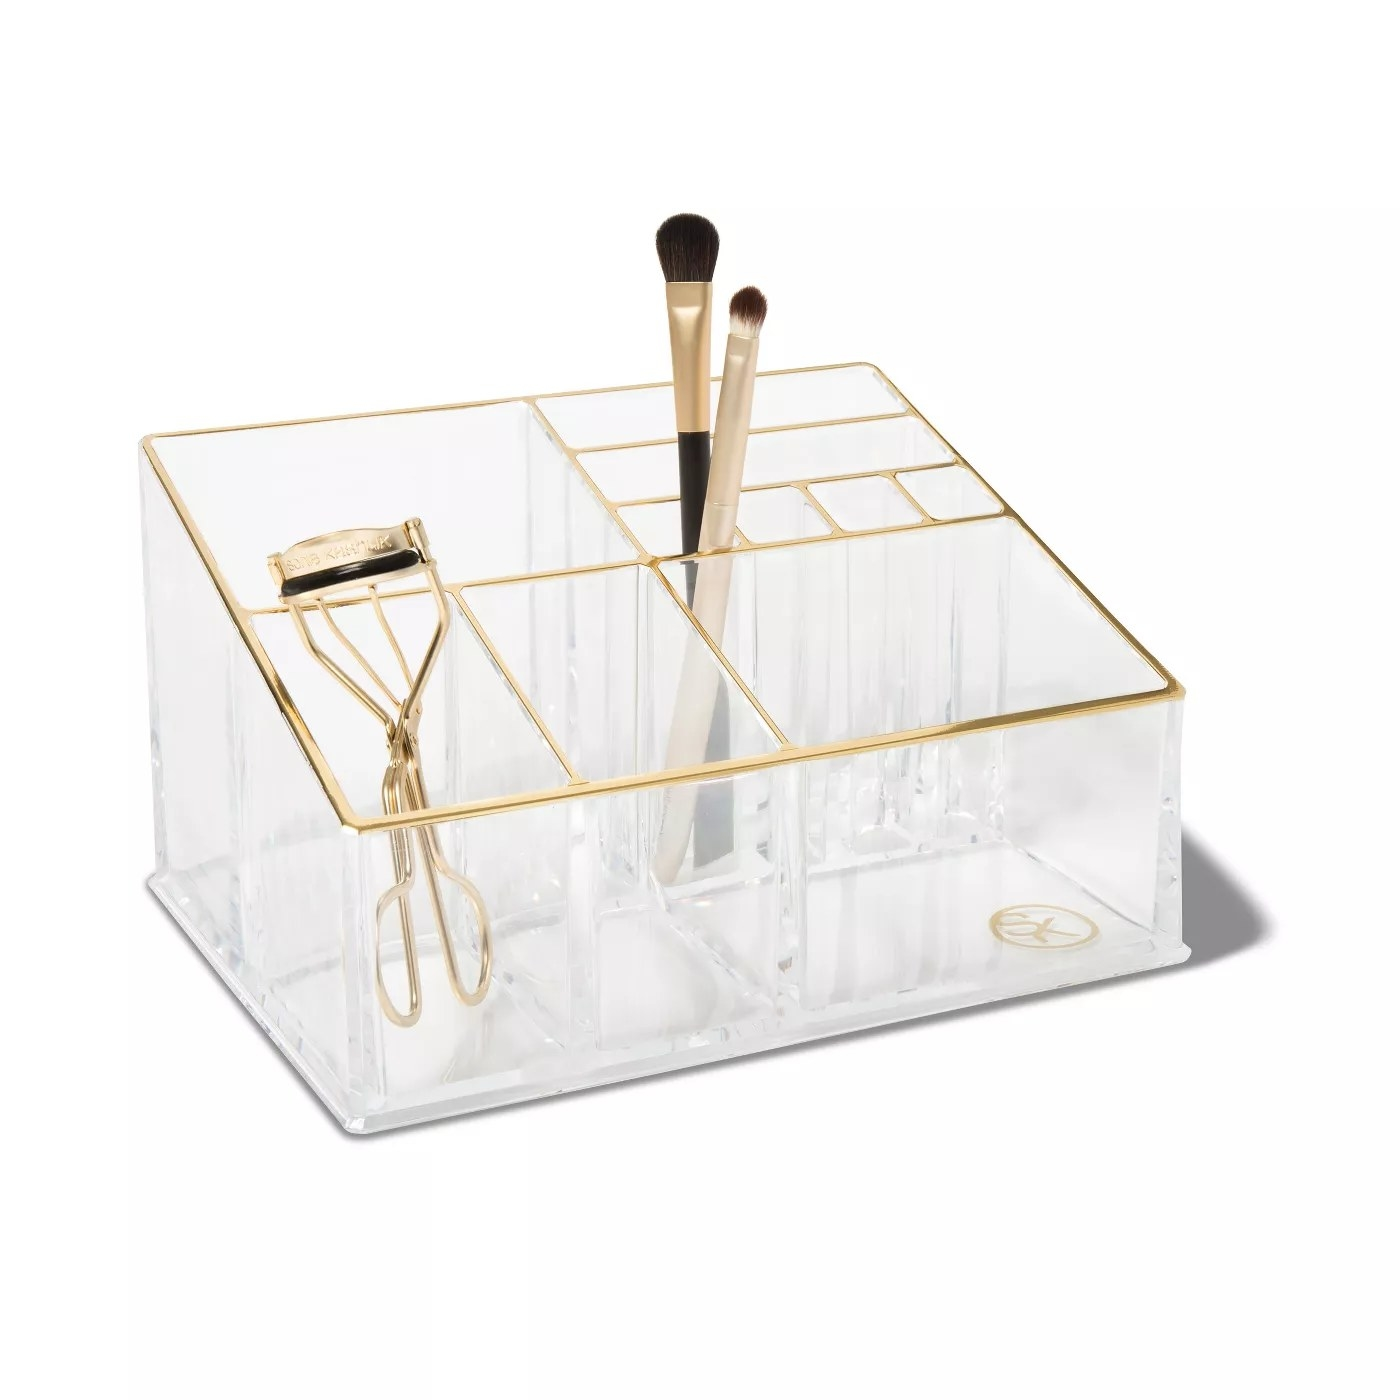 The clear makeup organizer with 10 separate compartments